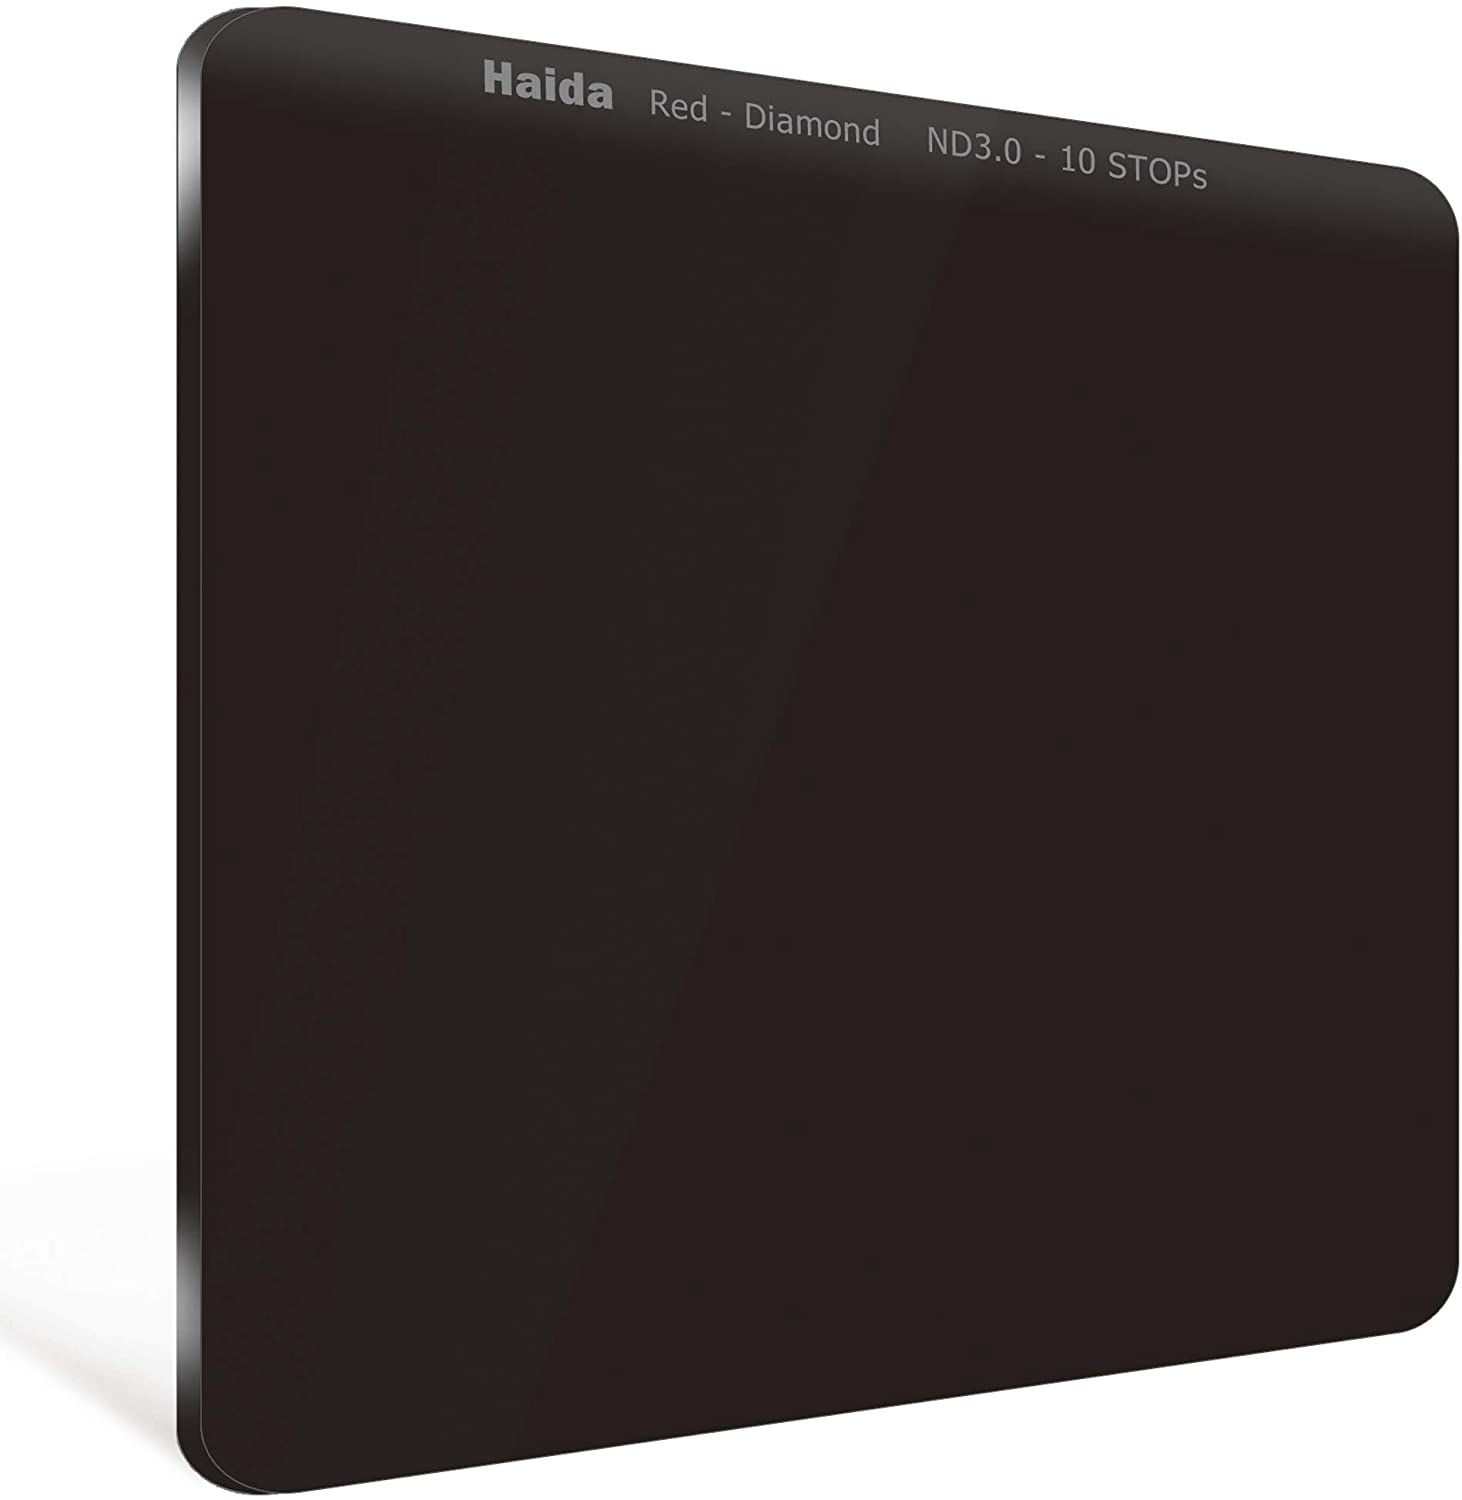 Haida Red-Diamond ND3.0 (1000x) 10-Stop Multicoated Filter 150x150mm